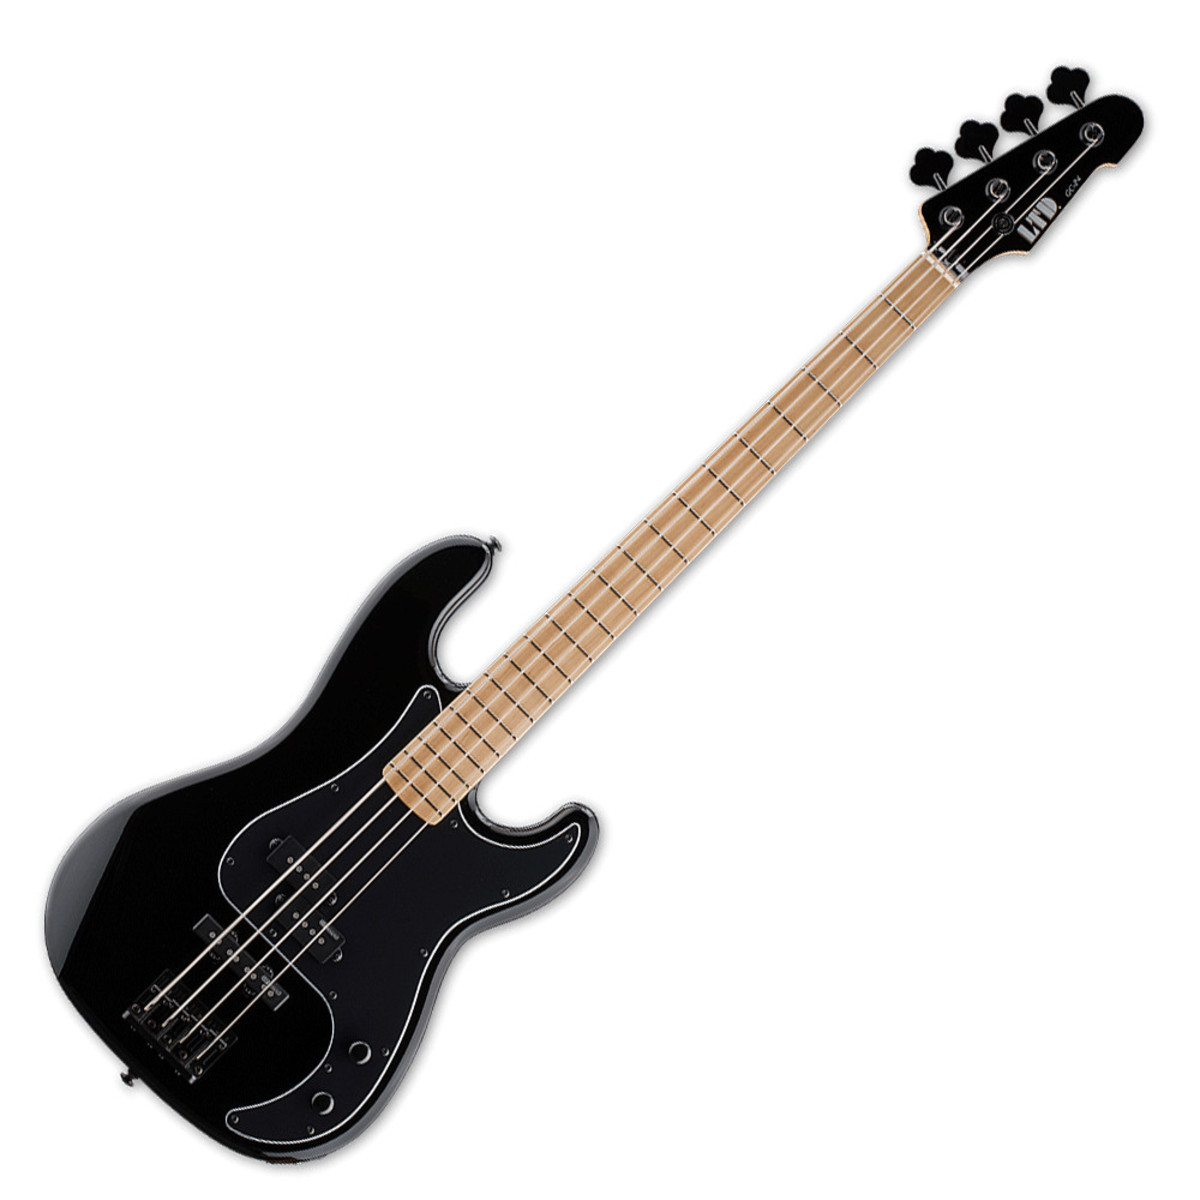 esp ltd gc p4 gabe crisp signature bass guitar black at. Black Bedroom Furniture Sets. Home Design Ideas